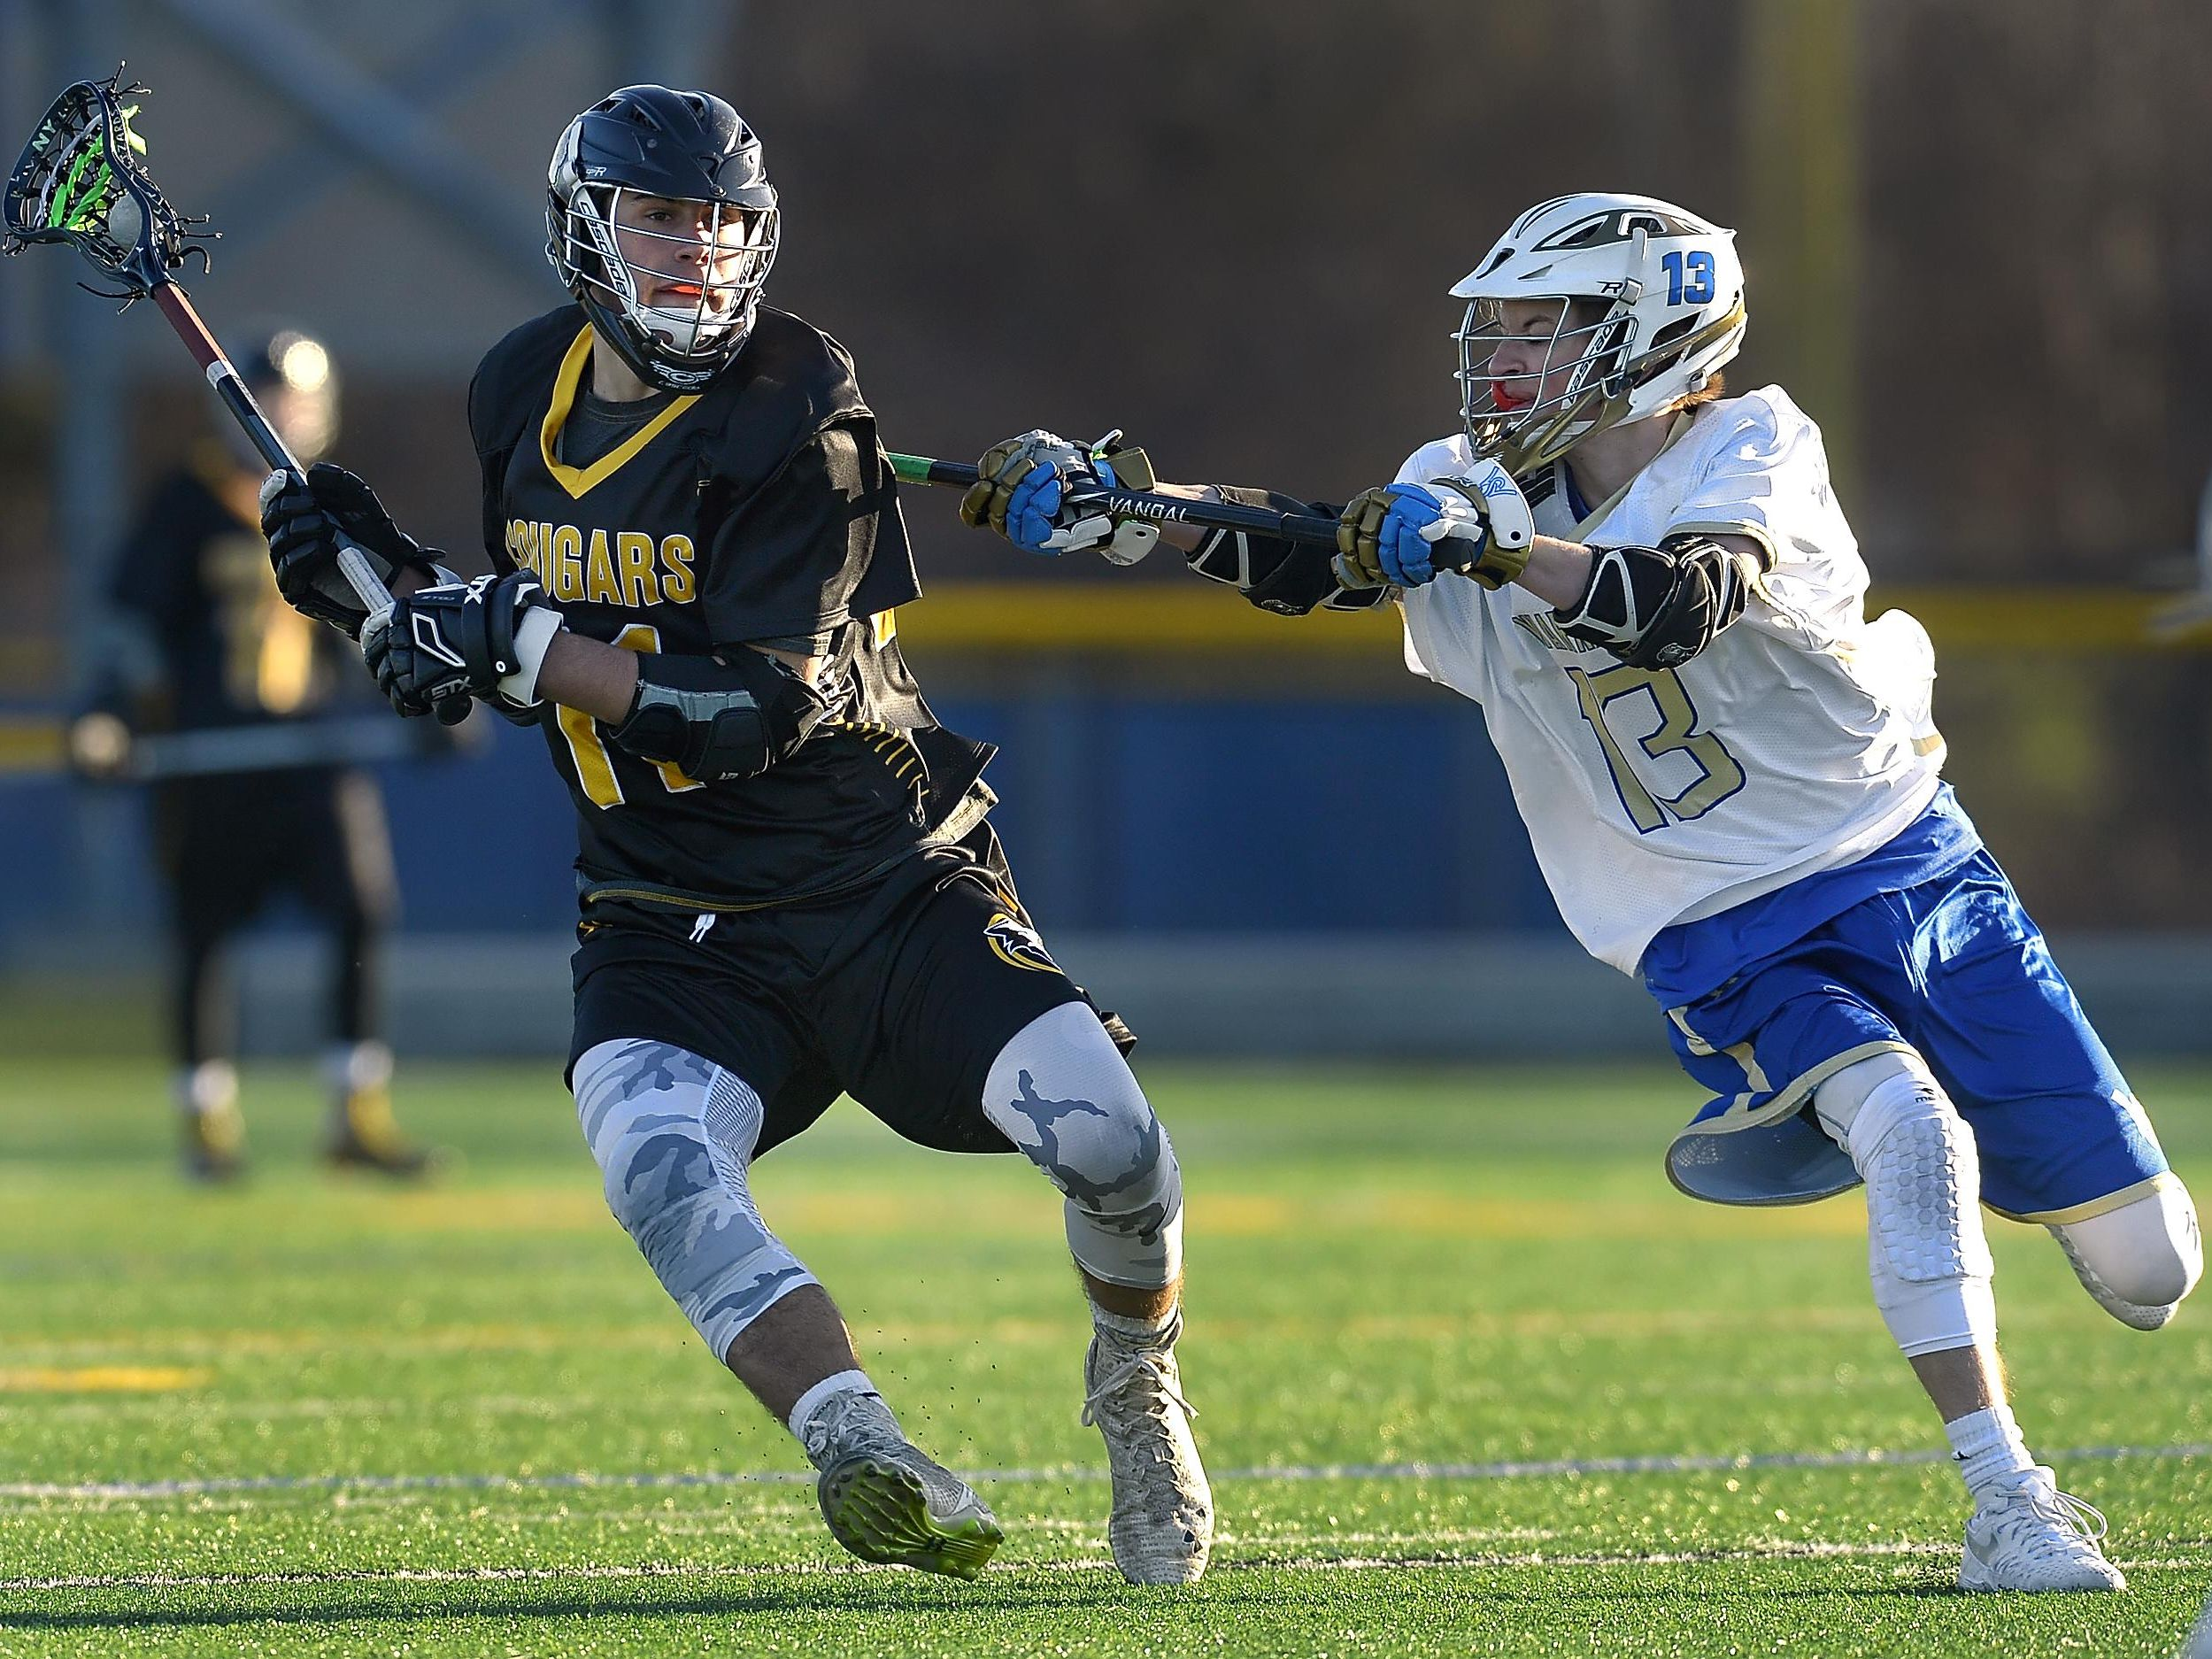 HF-L's Jonathan Roth, left, is defended by Webster Schroeder's Peyton Hall during a regular season game played at Webster Schroeder High School on Tuesday, March 29, 2016. Honeoye Falls-Lima beat Webster Schroeder 11-10 in overtime.